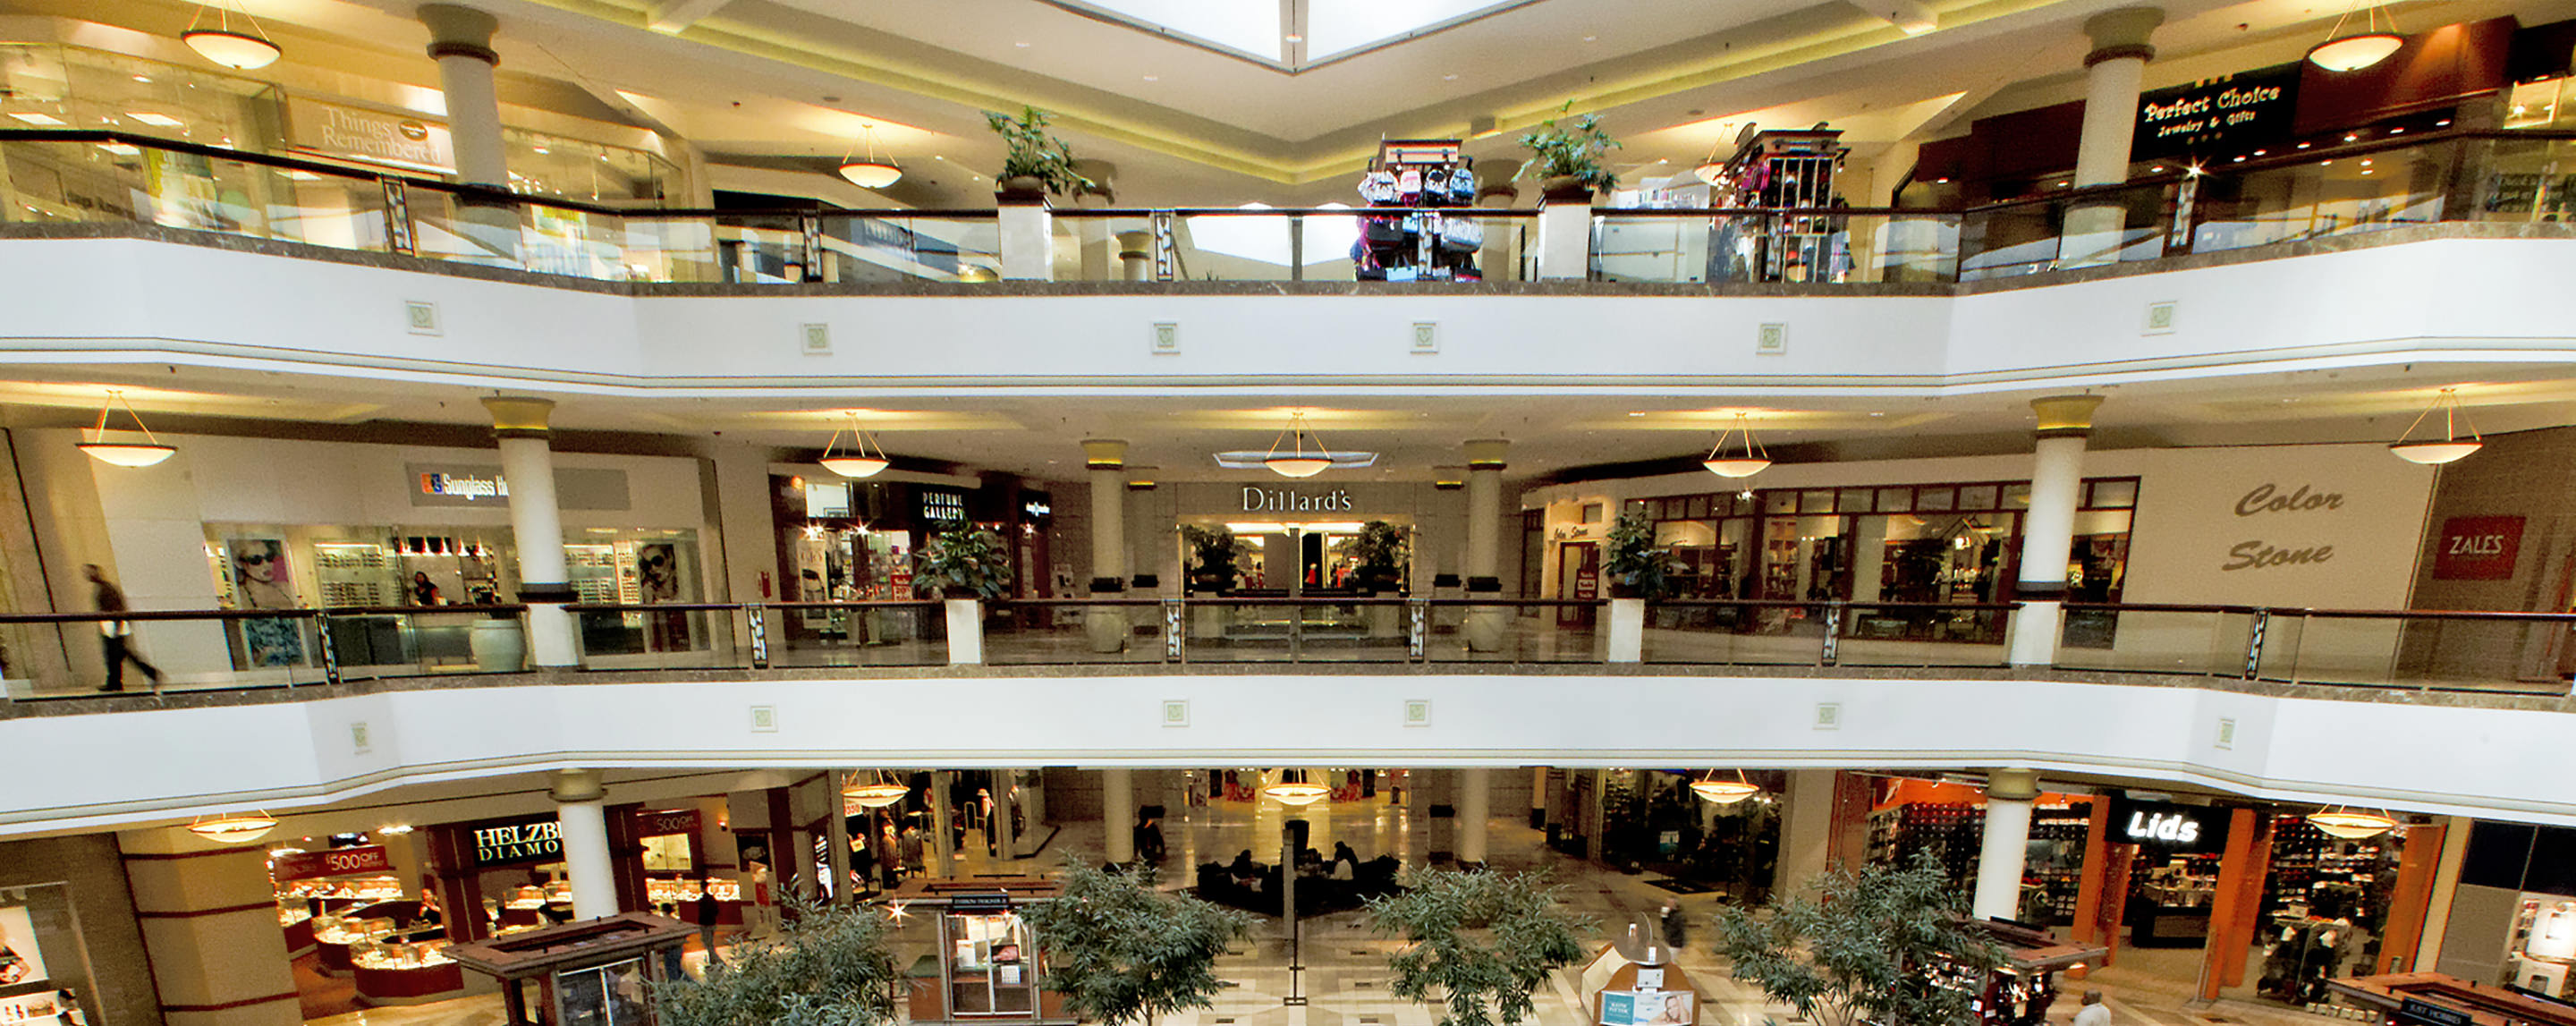 Looking across the interior atrium, you can see three levels of store fronts decorated with potted greenery and hanging lamps.